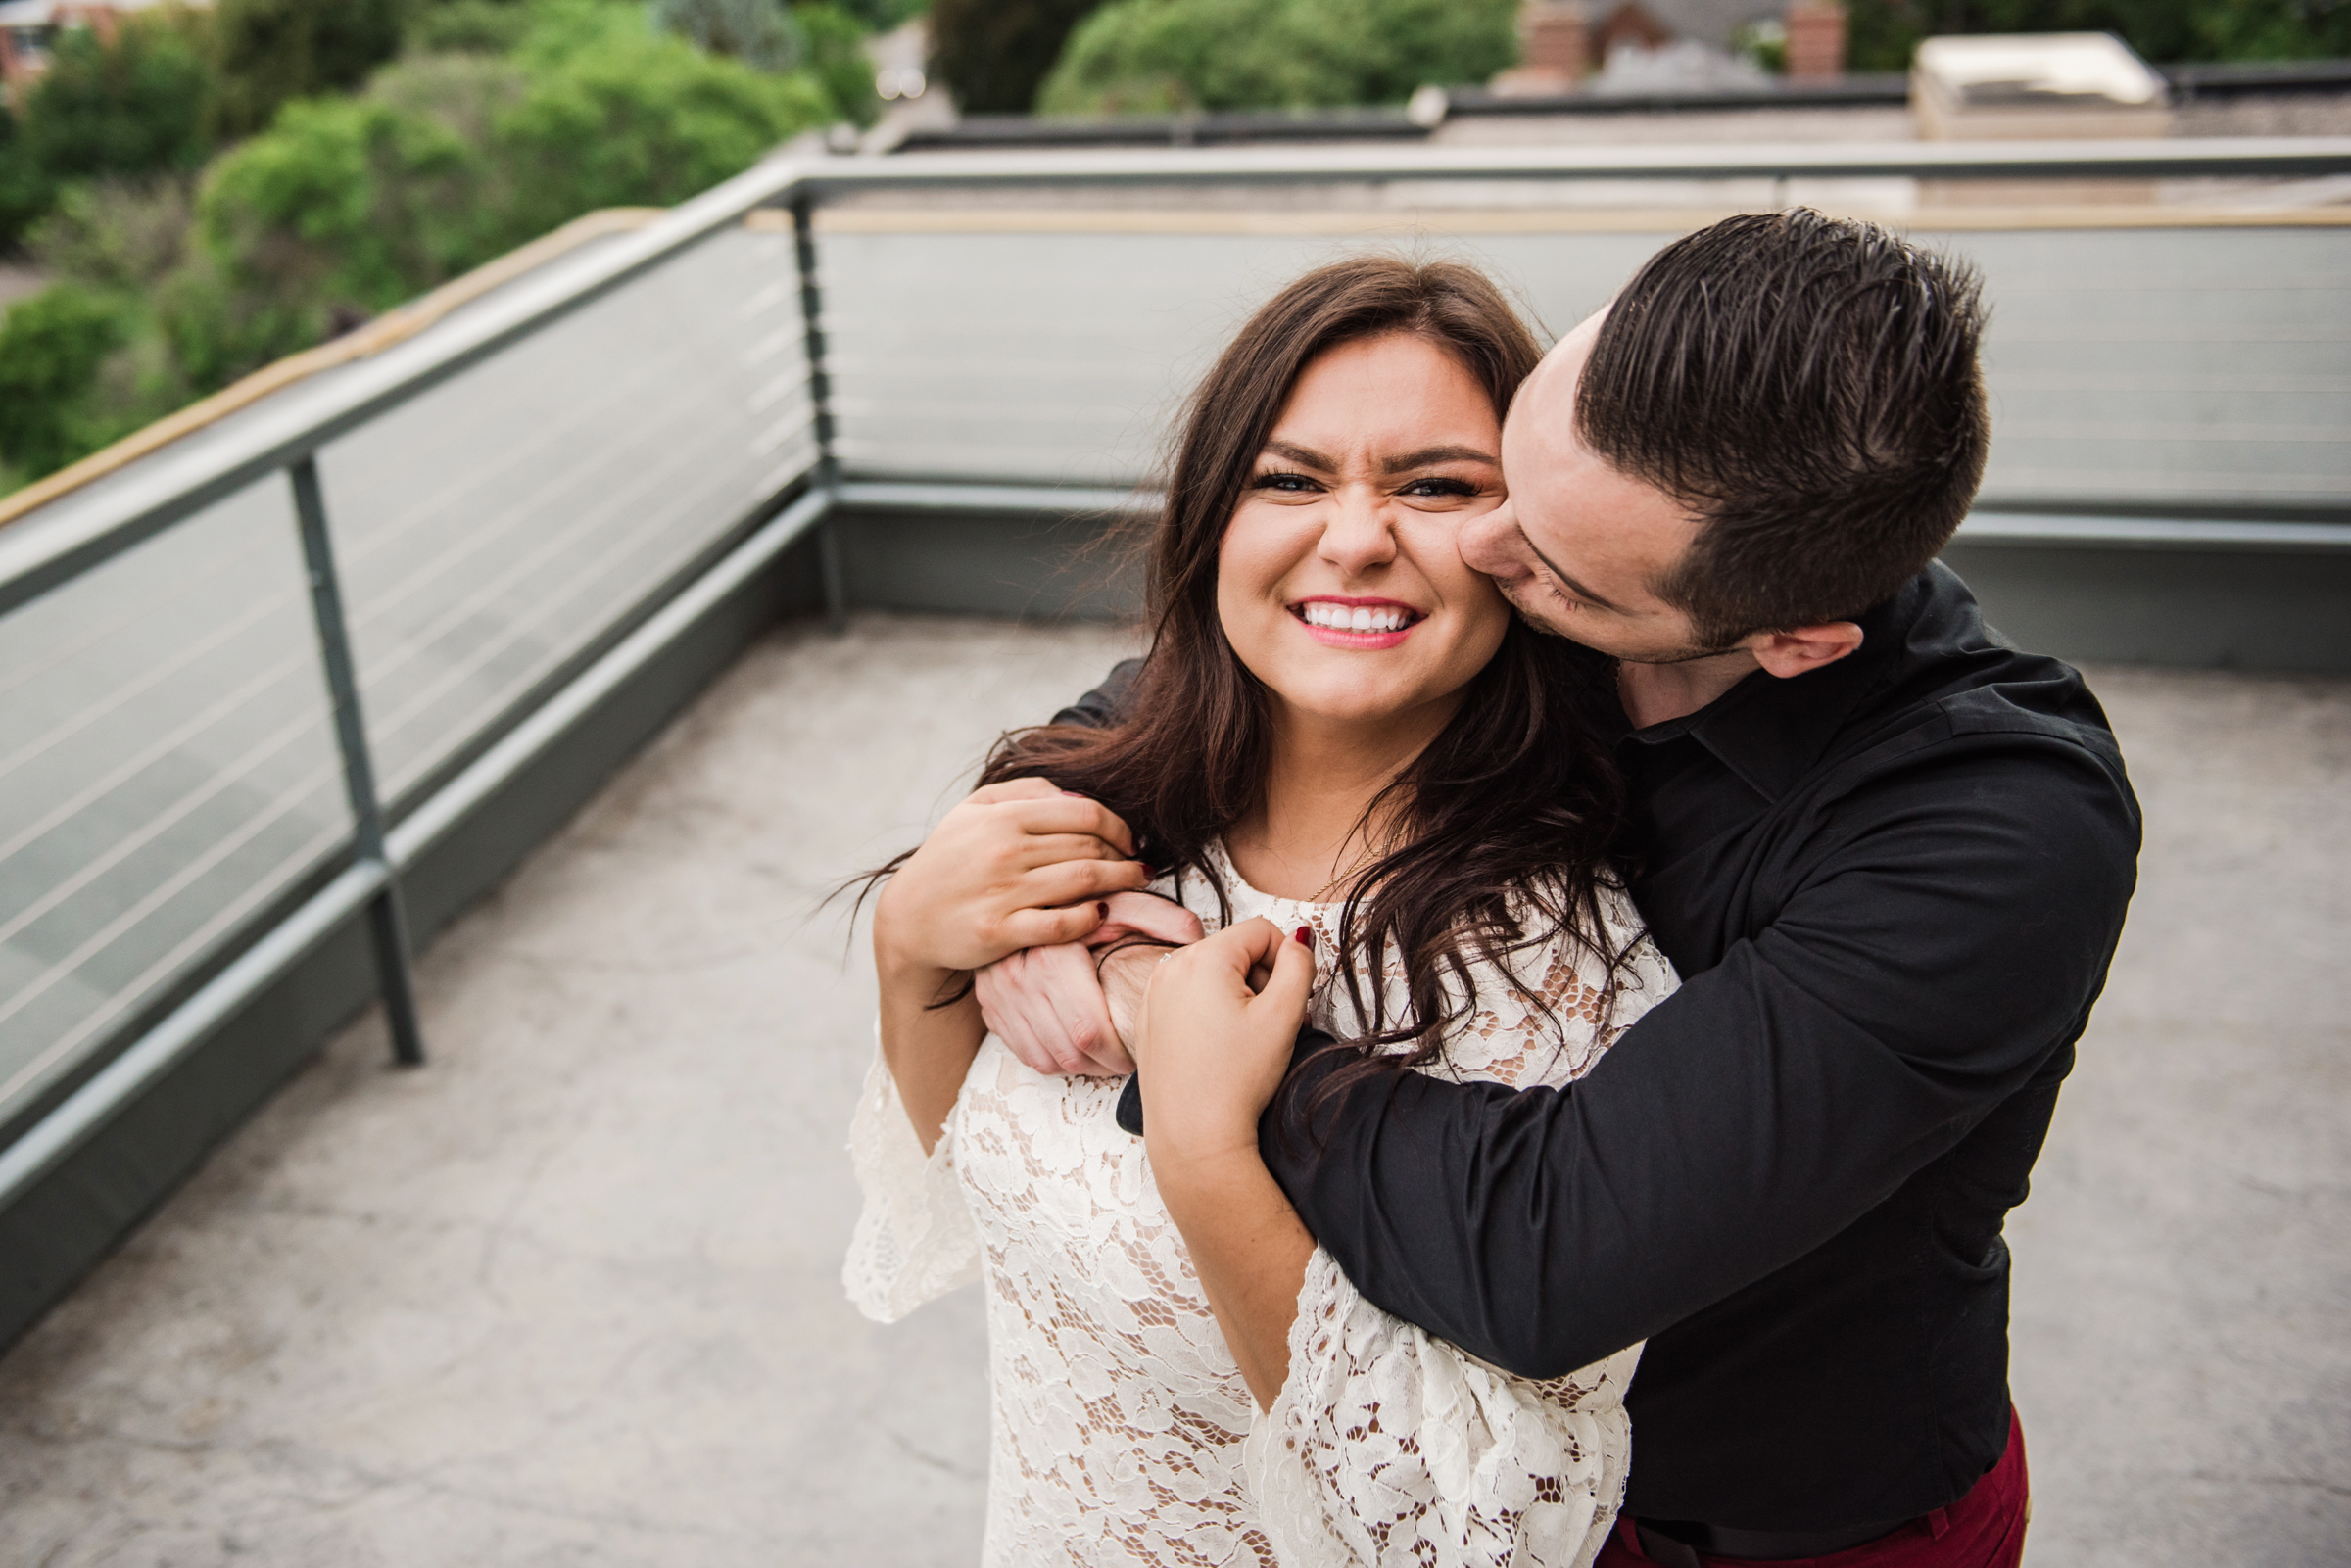 George_Eastman_House_Rochester_Engagement_Session_JILL_STUDIO_Rochester_NY_Photographer_DSC_6547.jpg